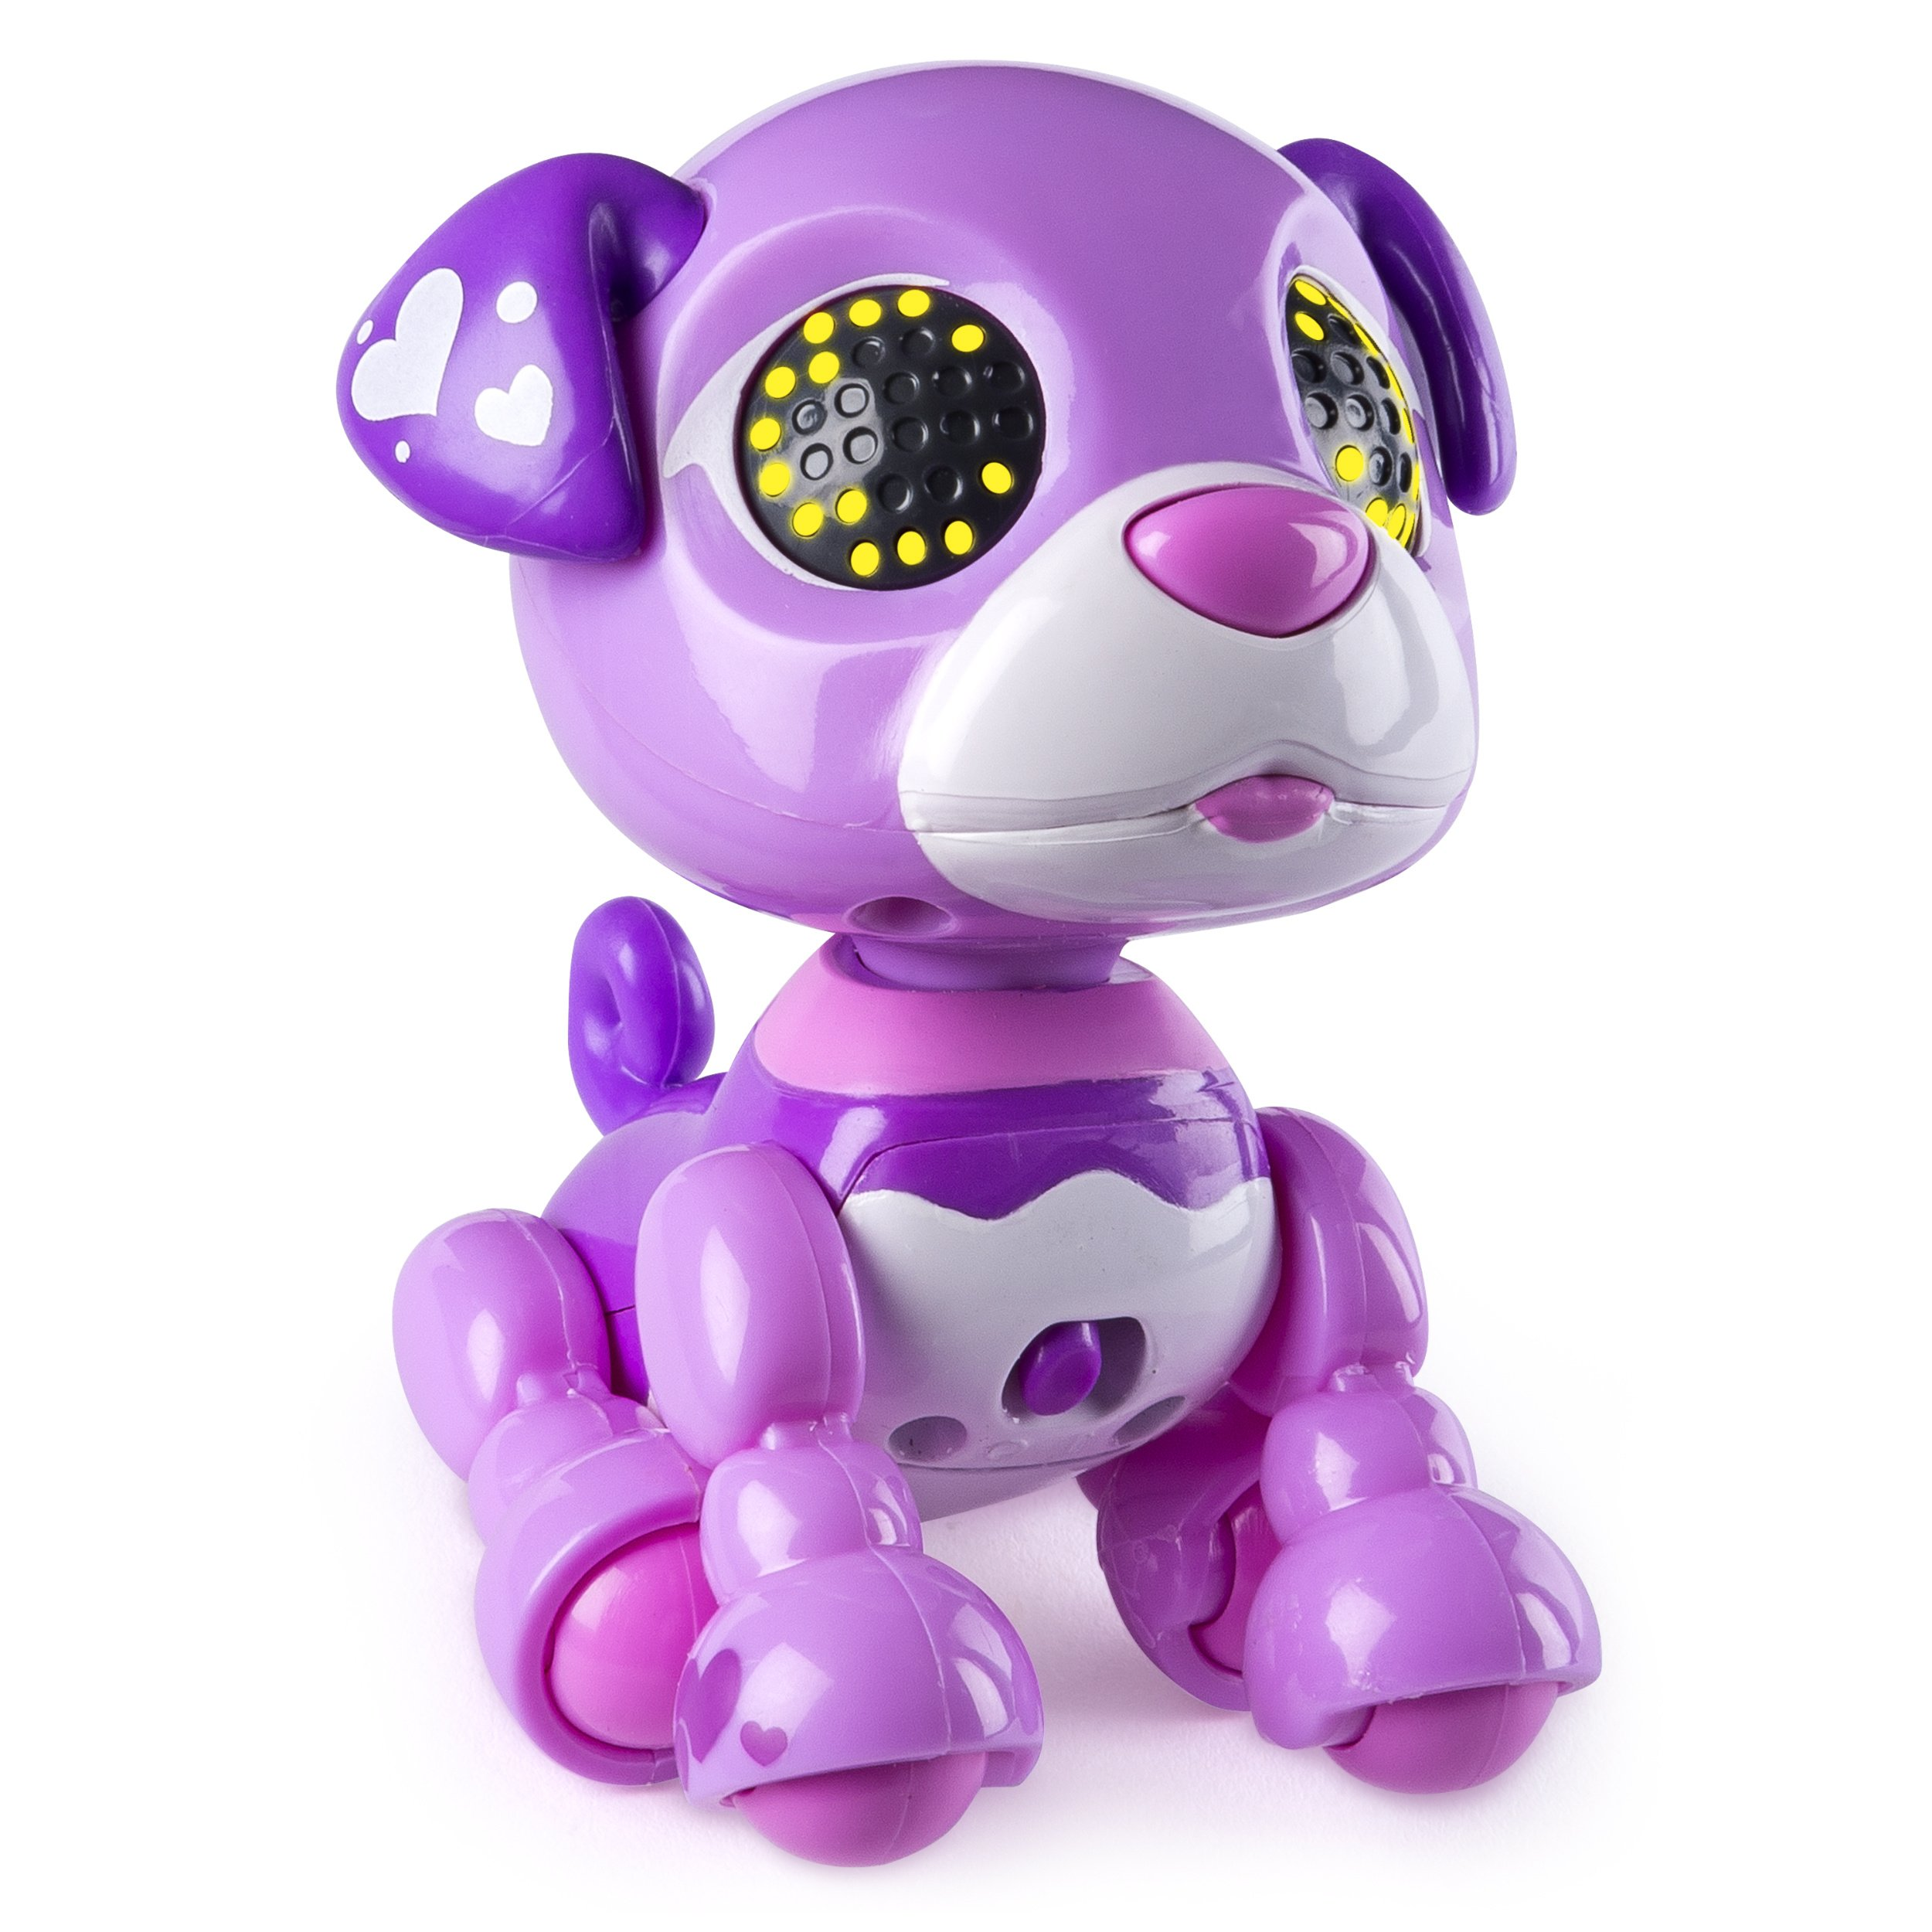 Toys For Girls Robot Dog Toy Kids Pug Puppy Robot 4 6 Year Old